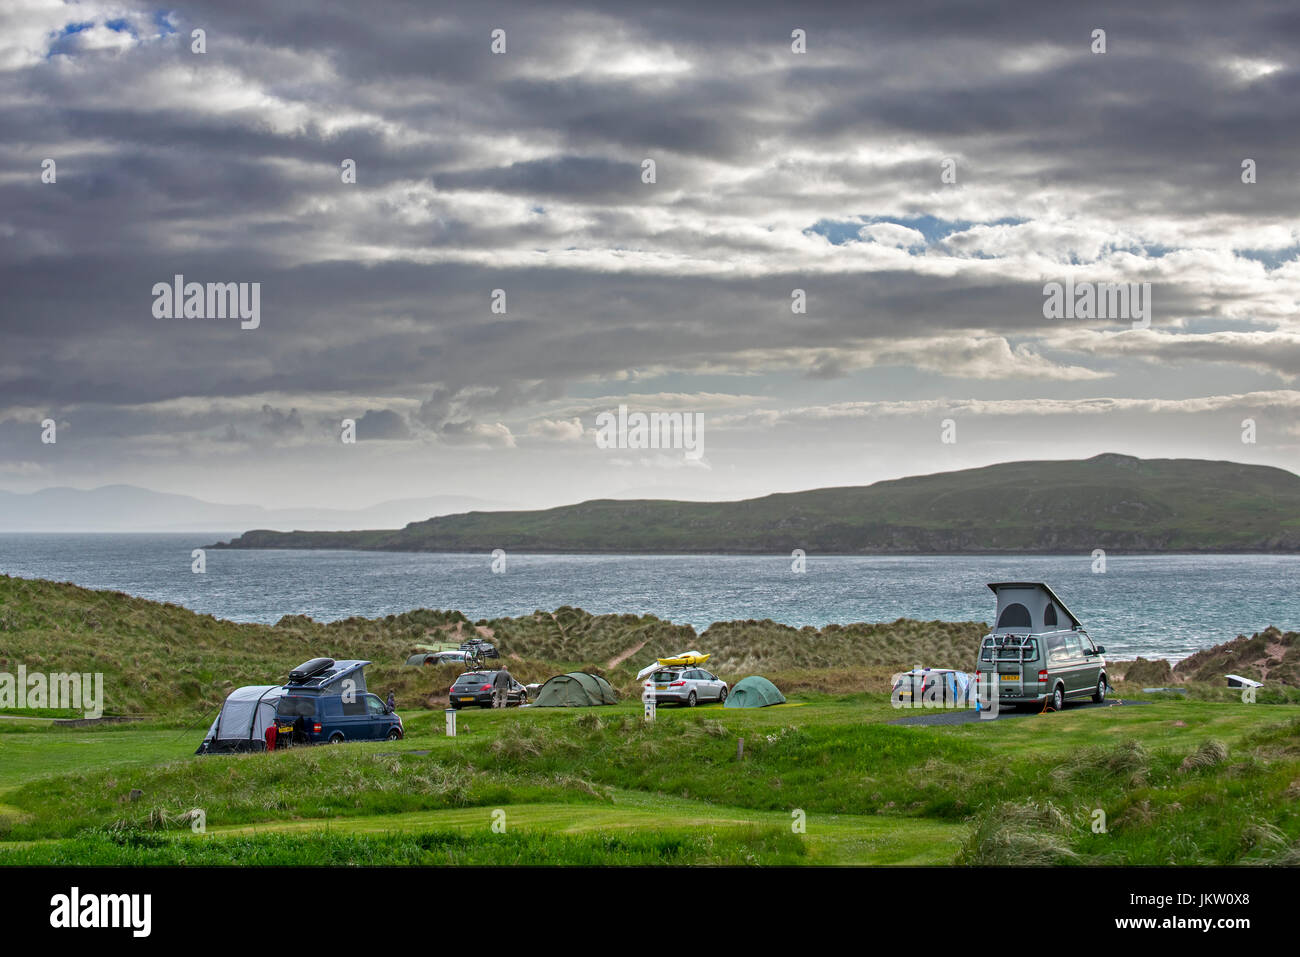 Campervans and tents on campsite along Loch Gairloch, Wester Ross, North-West Scottish Highlands, Scotland, UK - Stock Image